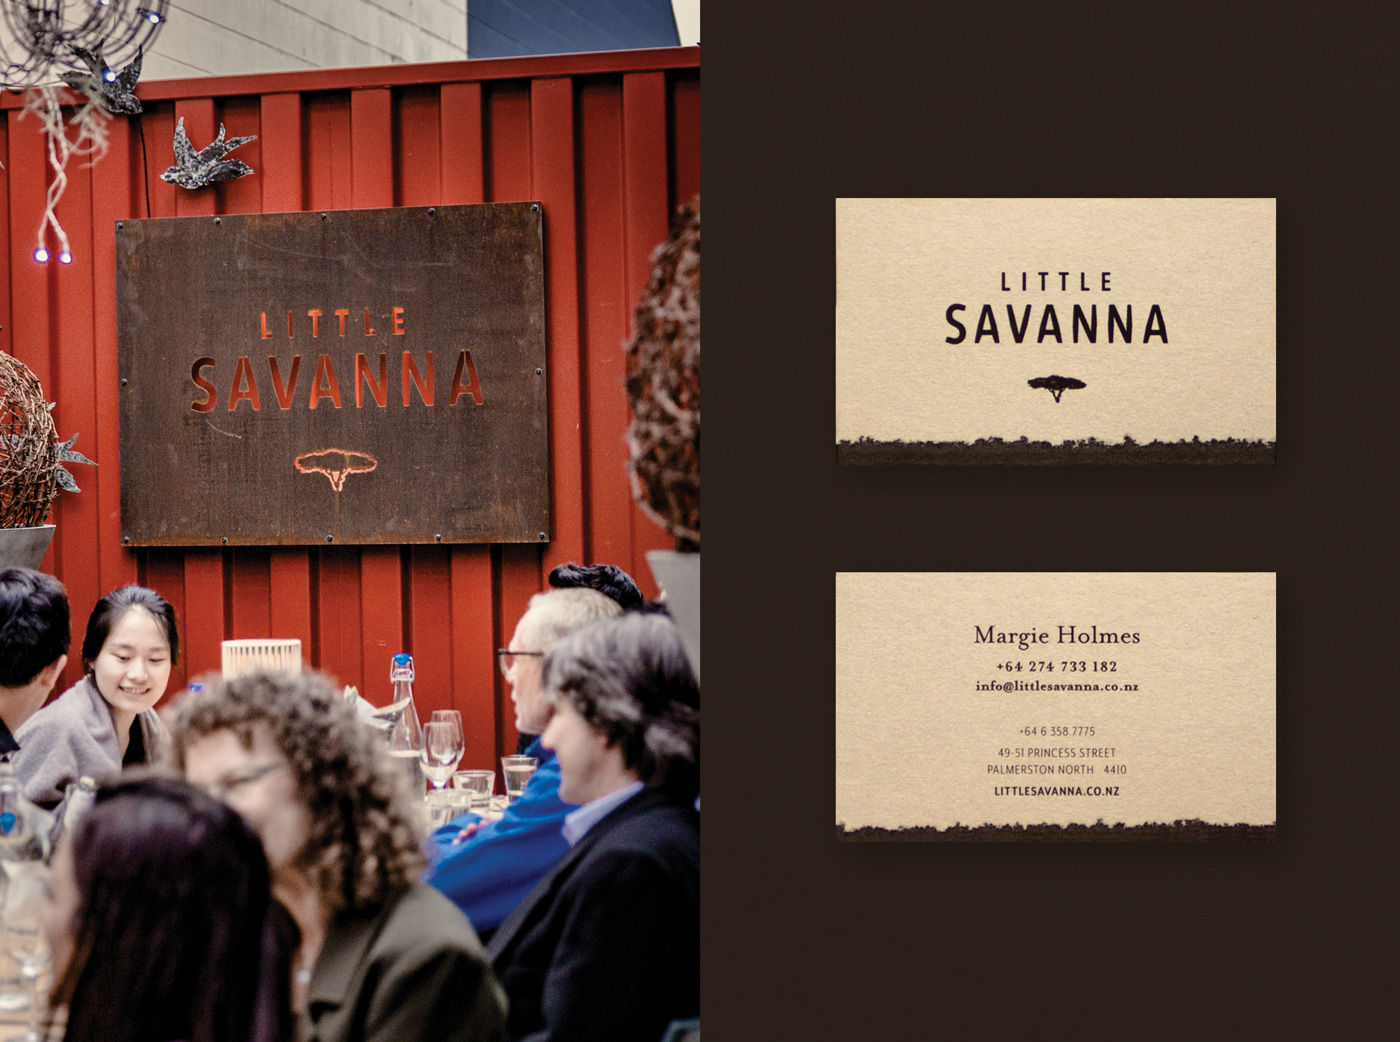 LSL Little Savanna 04